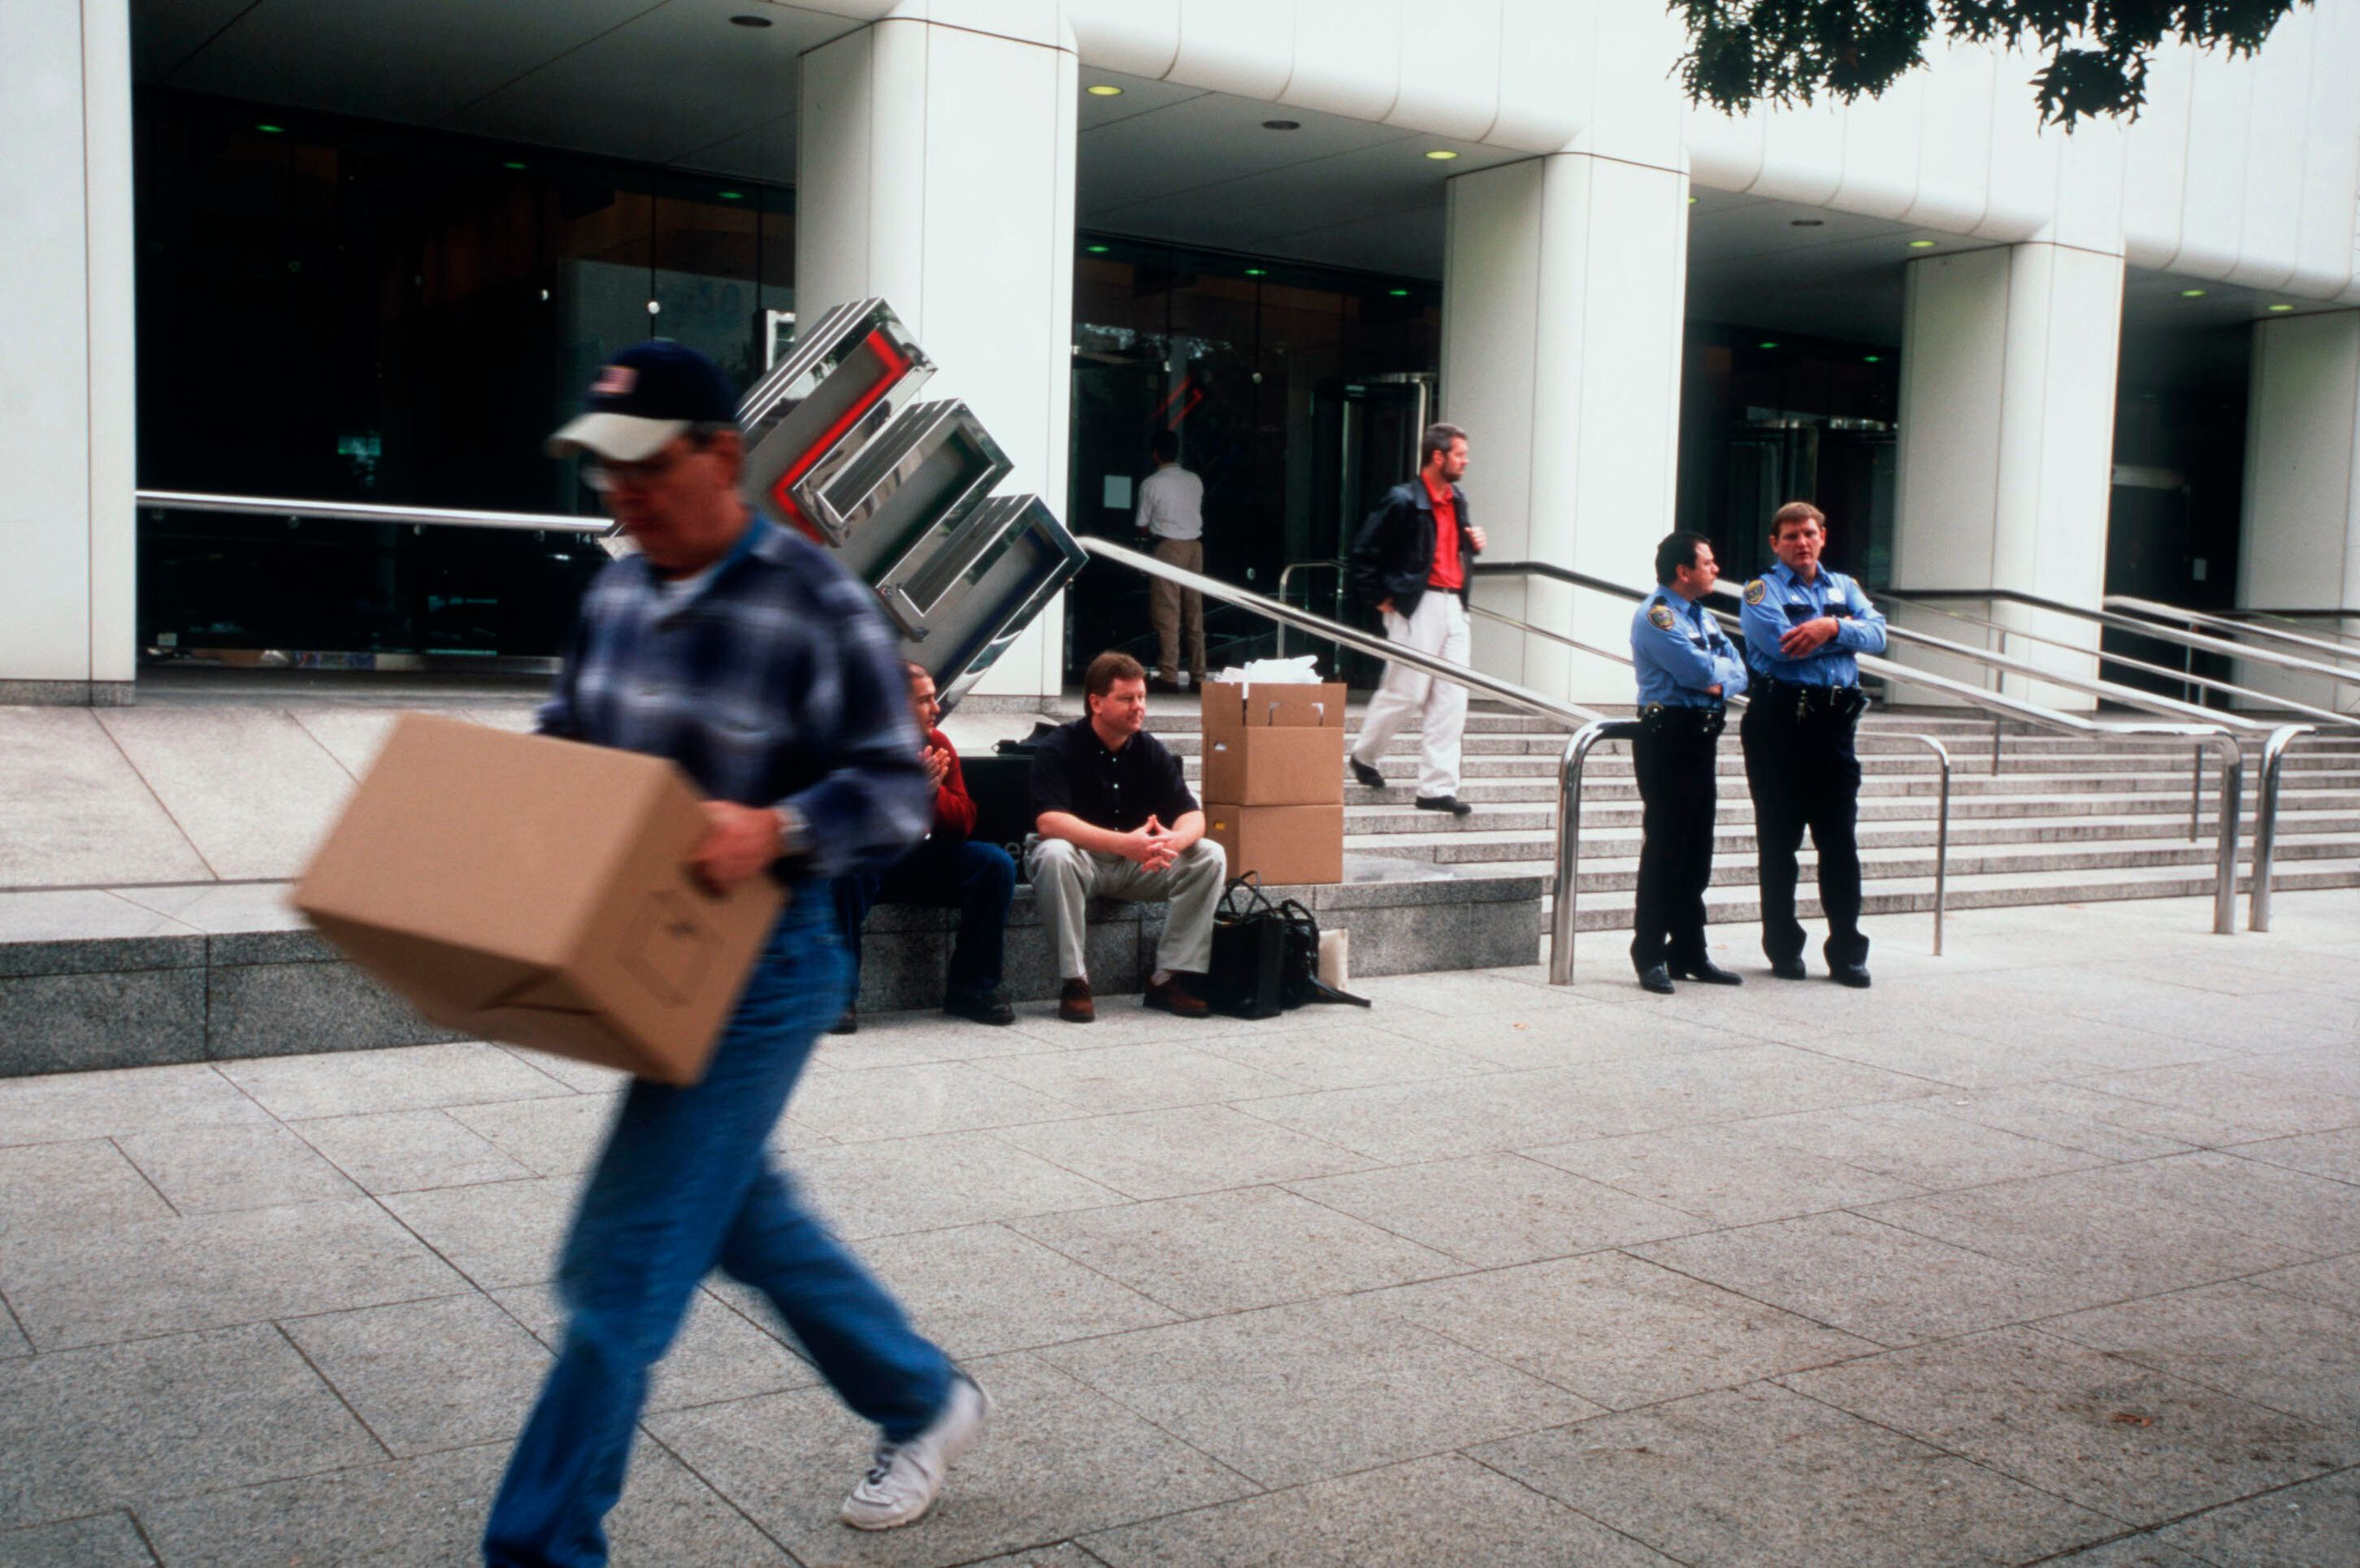 Employees remove their belongings from Enron's corporate headquarters after being laid off due to the company's collapse.